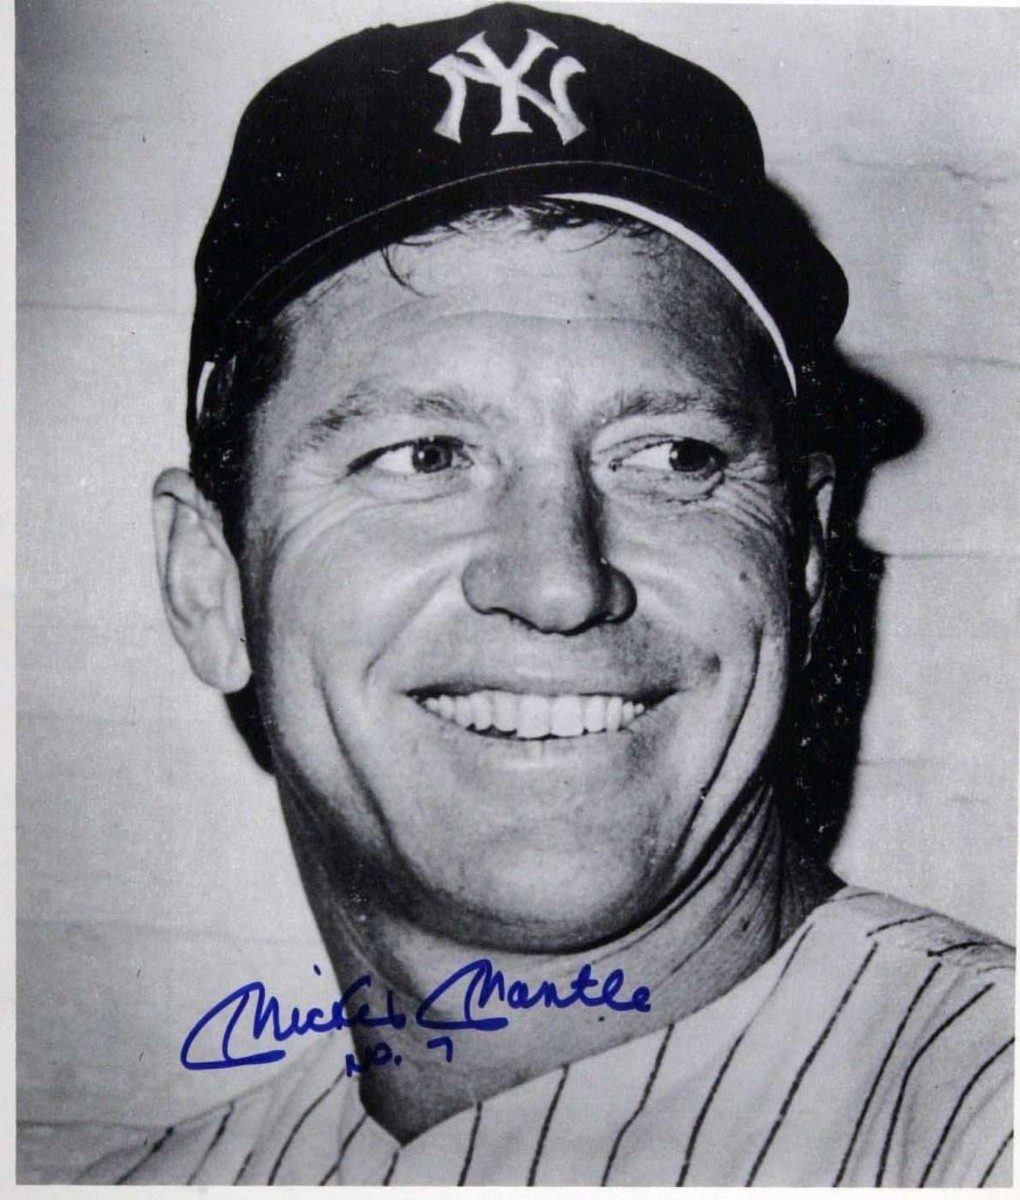 Mickey Mantle with the No. 7 beneath his signature – the classic look.